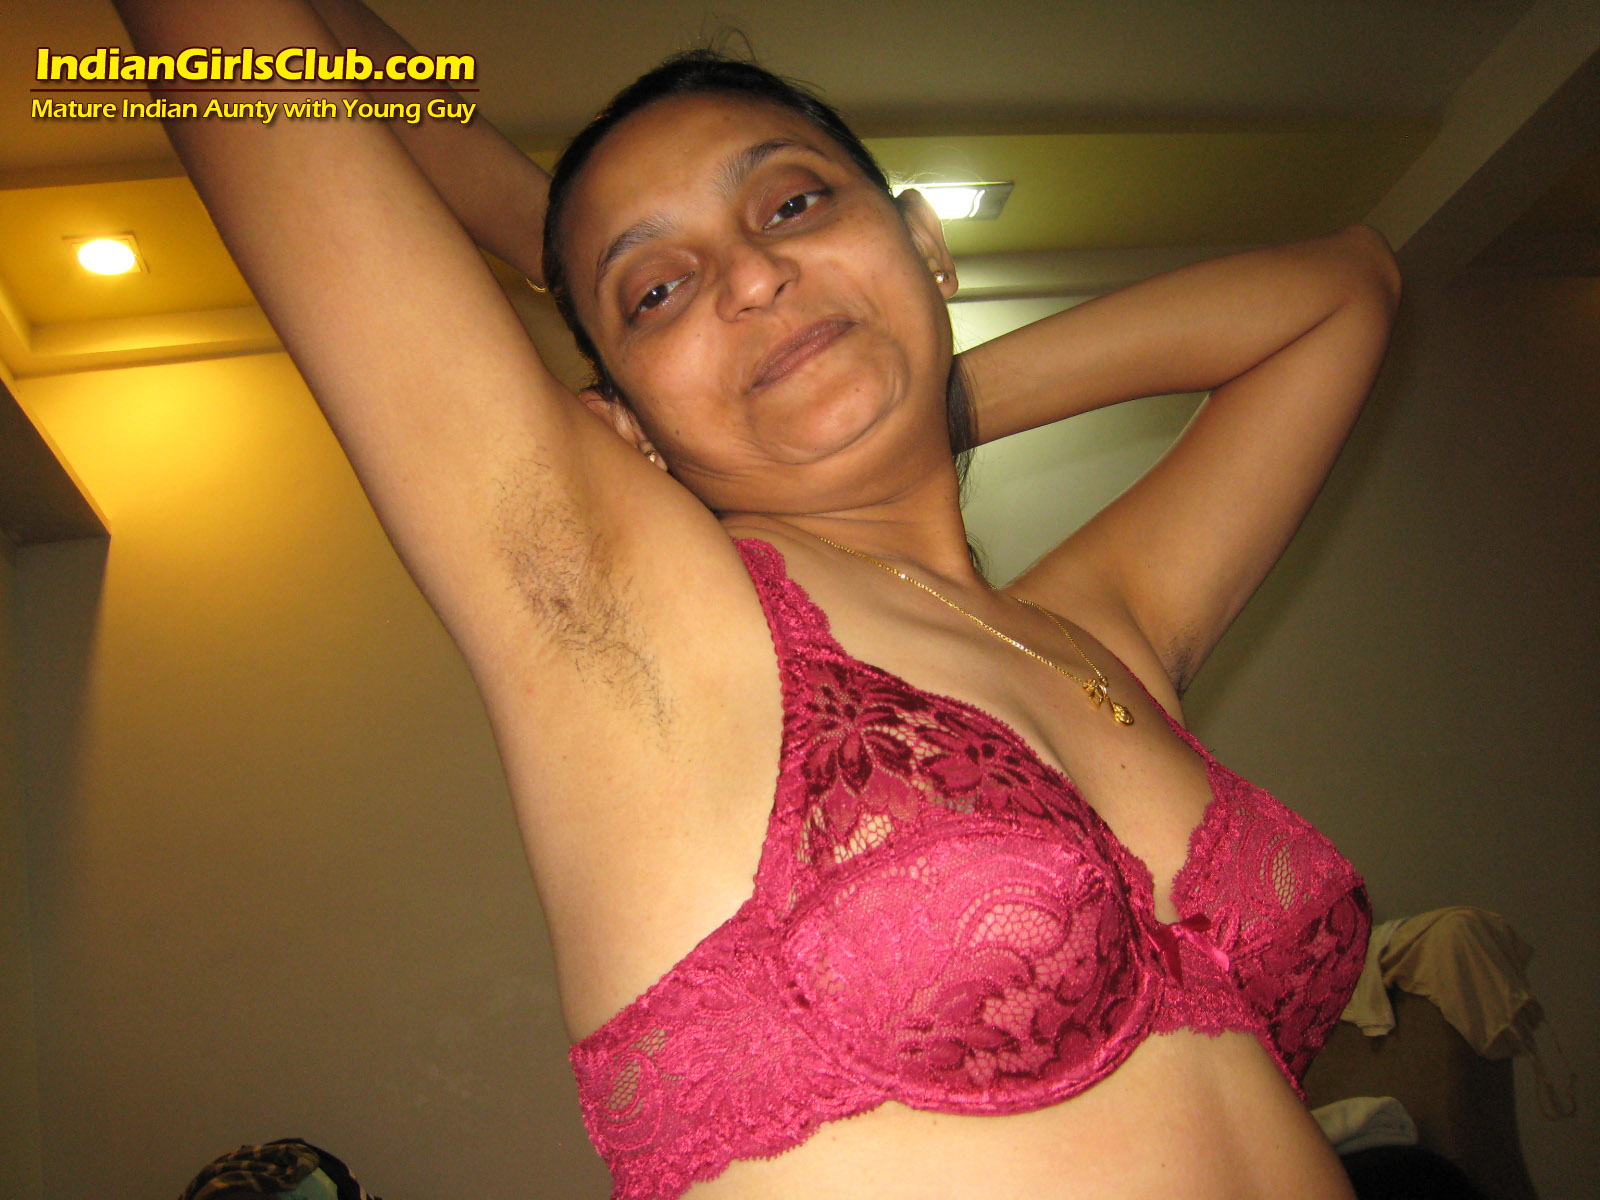 India nude photos